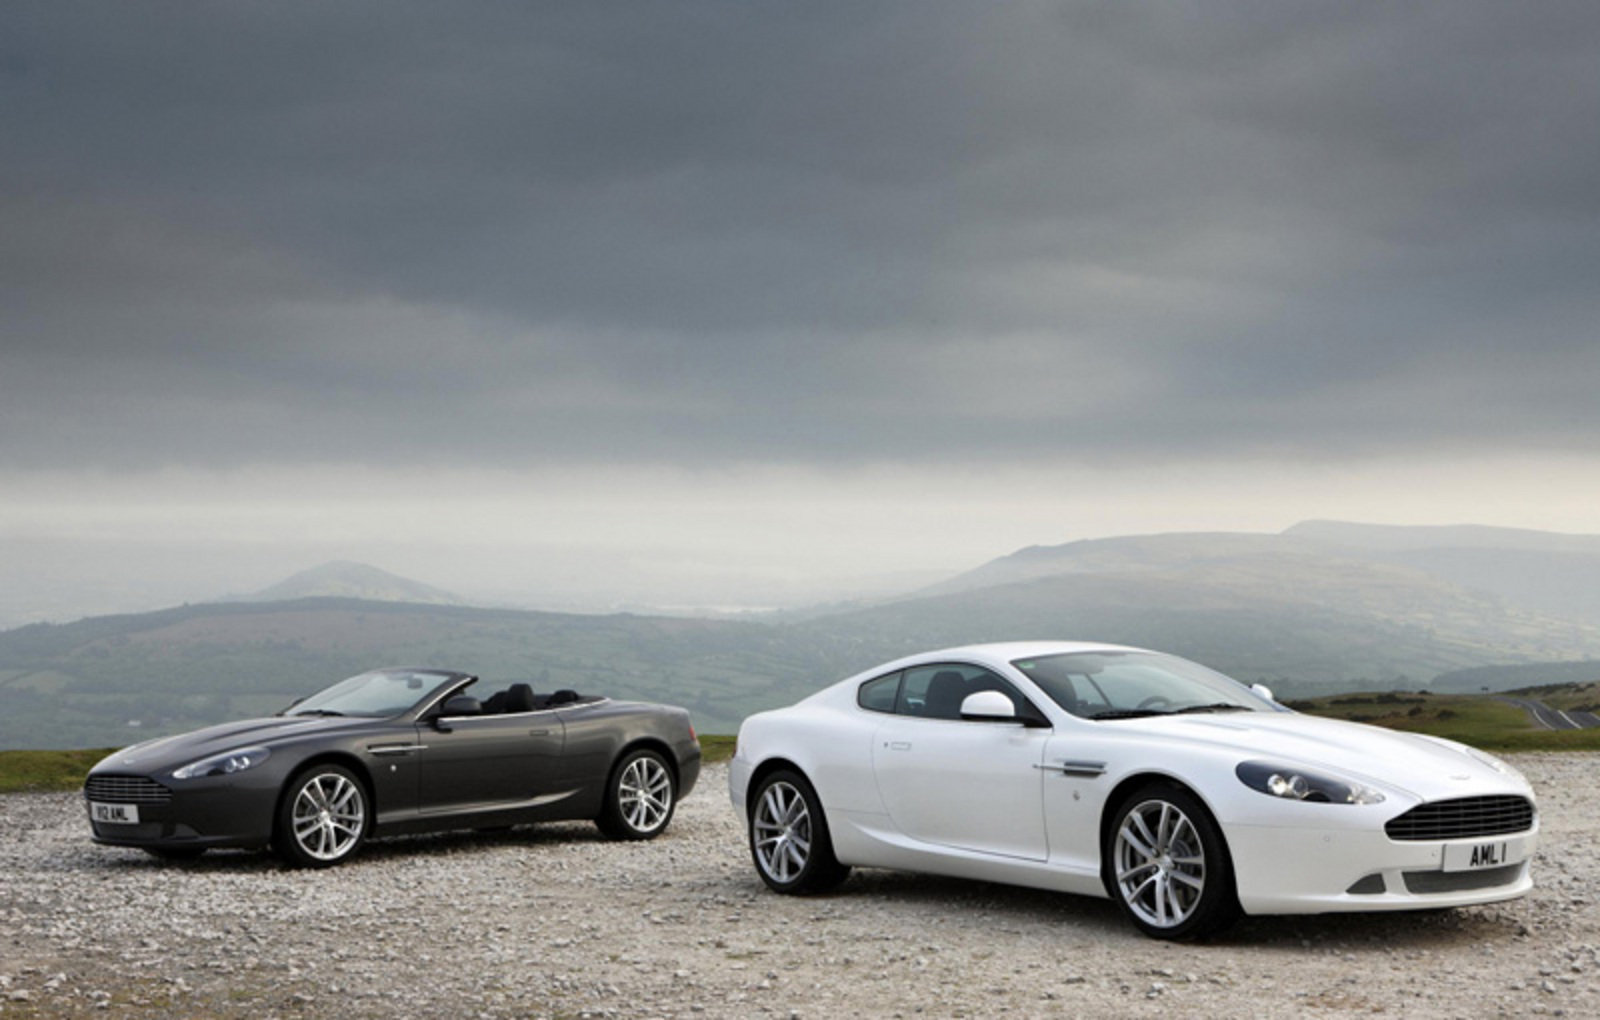 Aston Martin DB9 I Restyling 2008 - 2012 Coupe #3